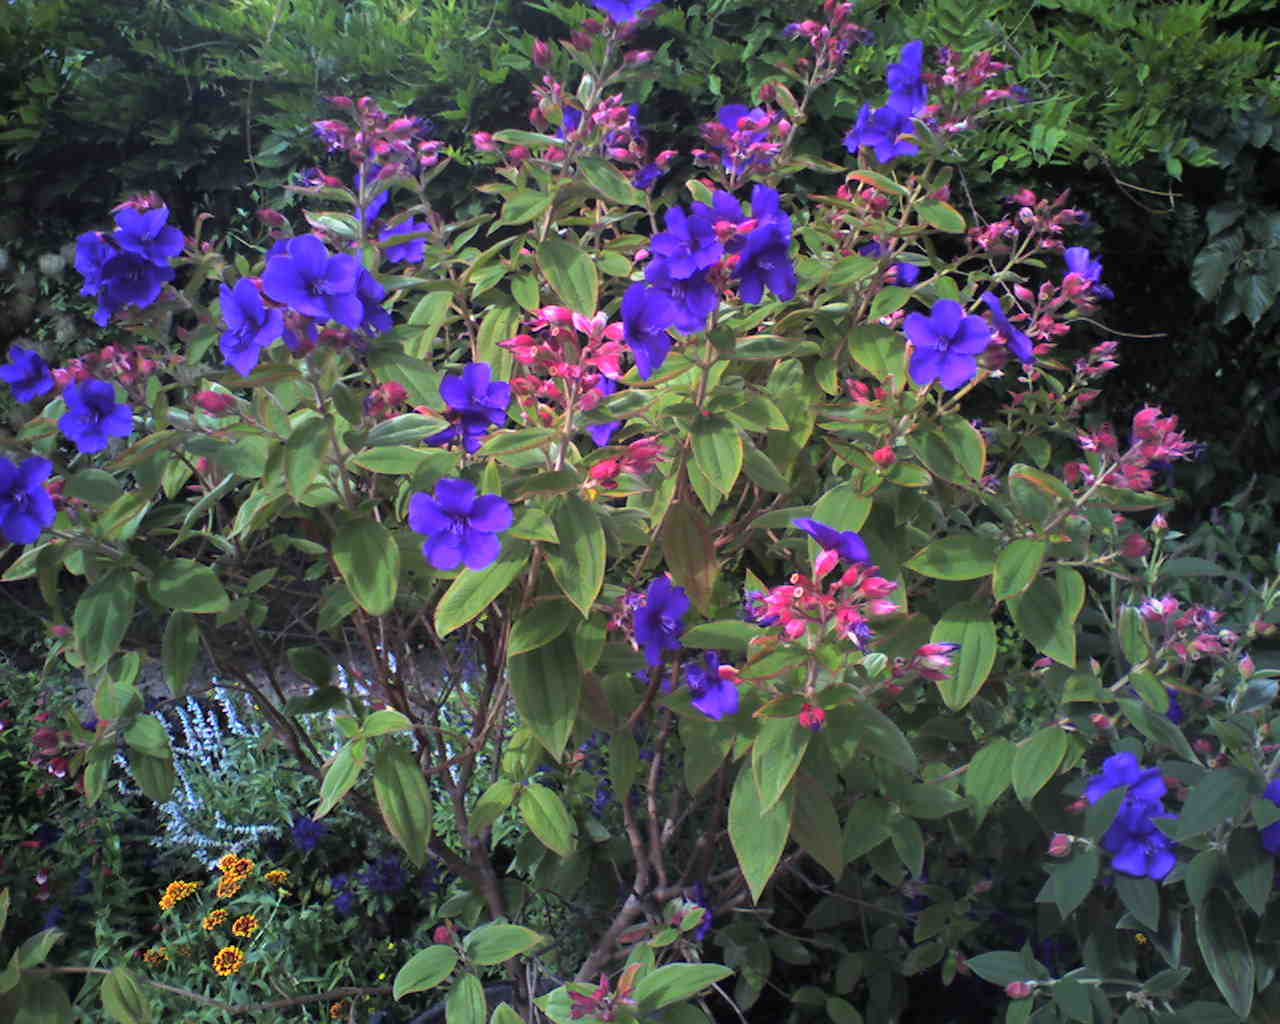 Shrubs with purple flowers pictures - We Get Questions